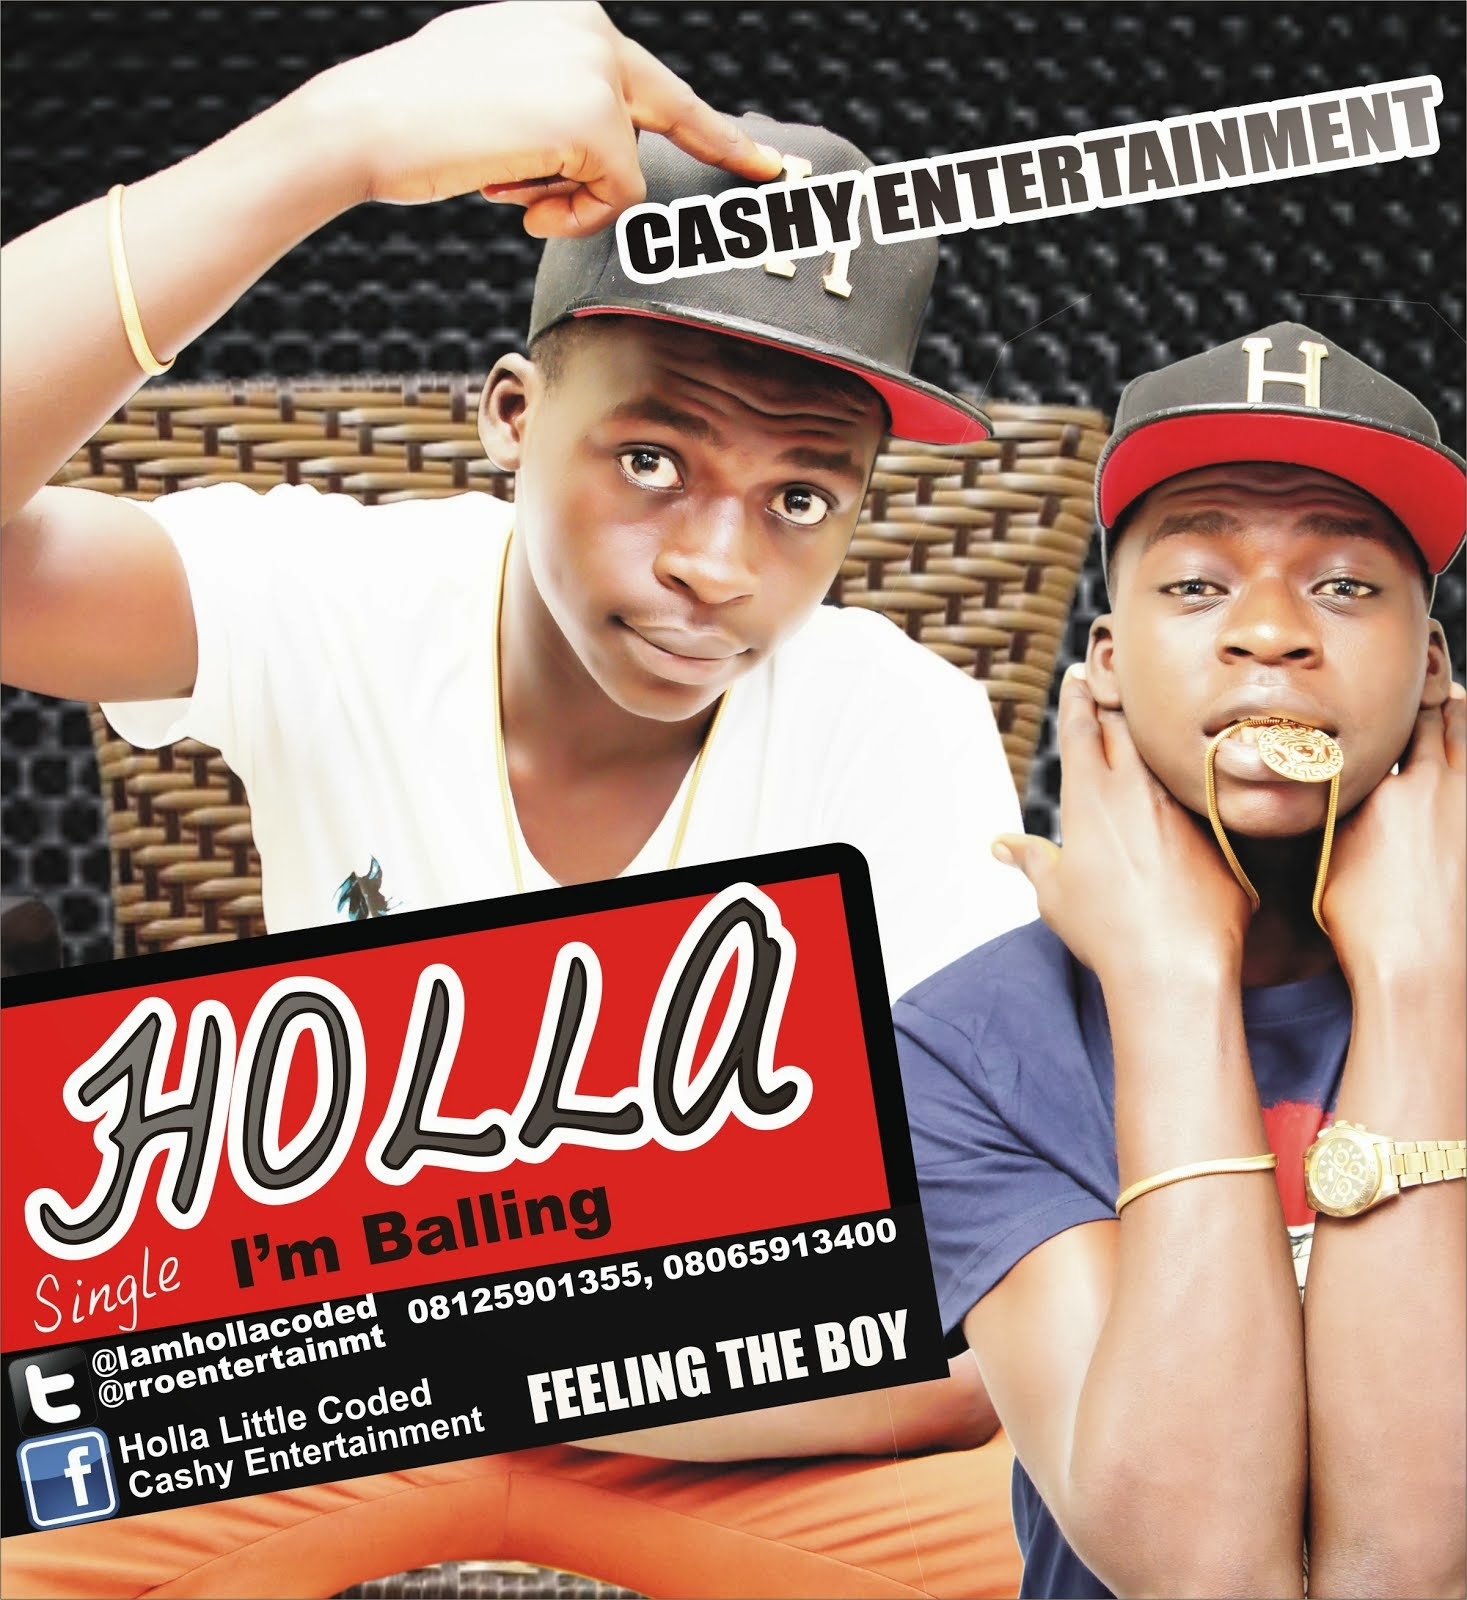 Music: Holla - I'm Balling + Feelin the Boy II Cashy Entertainment